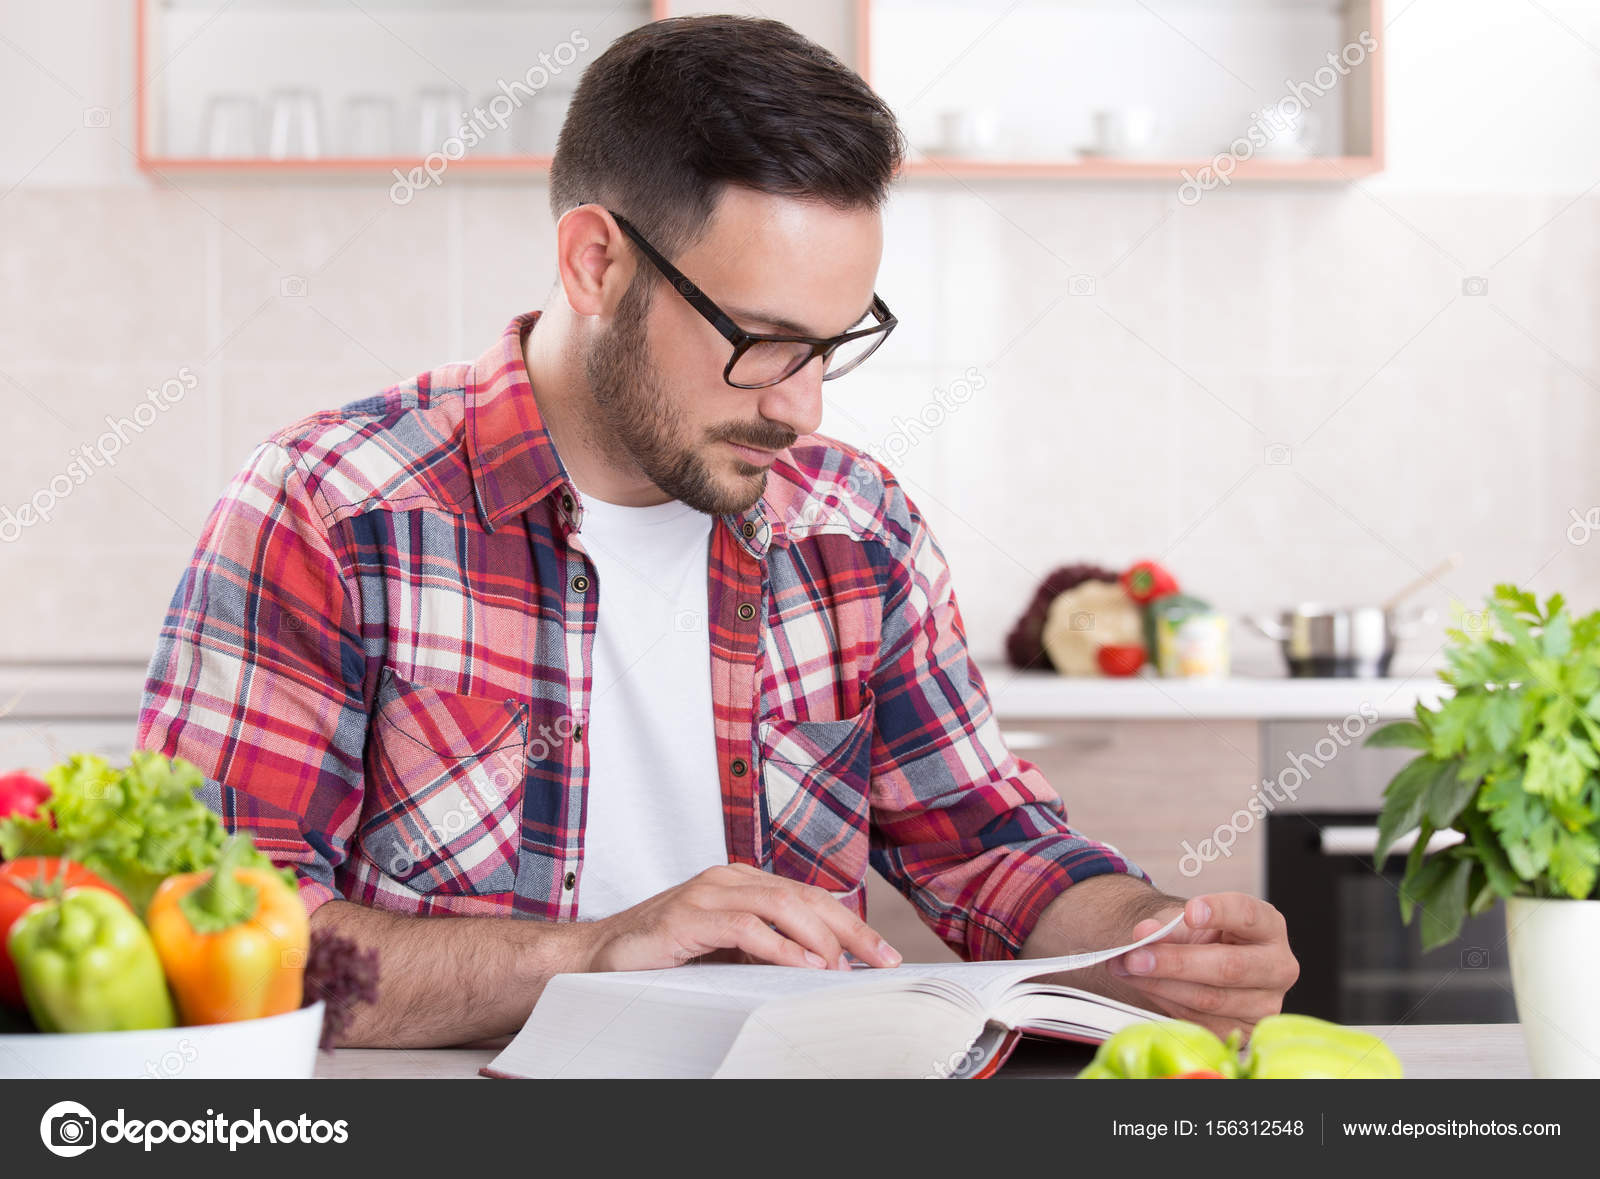 Man reading recipe book in kitchen stock photo budabar 156312548 man reading recipe book in kitchen stock photo forumfinder Image collections